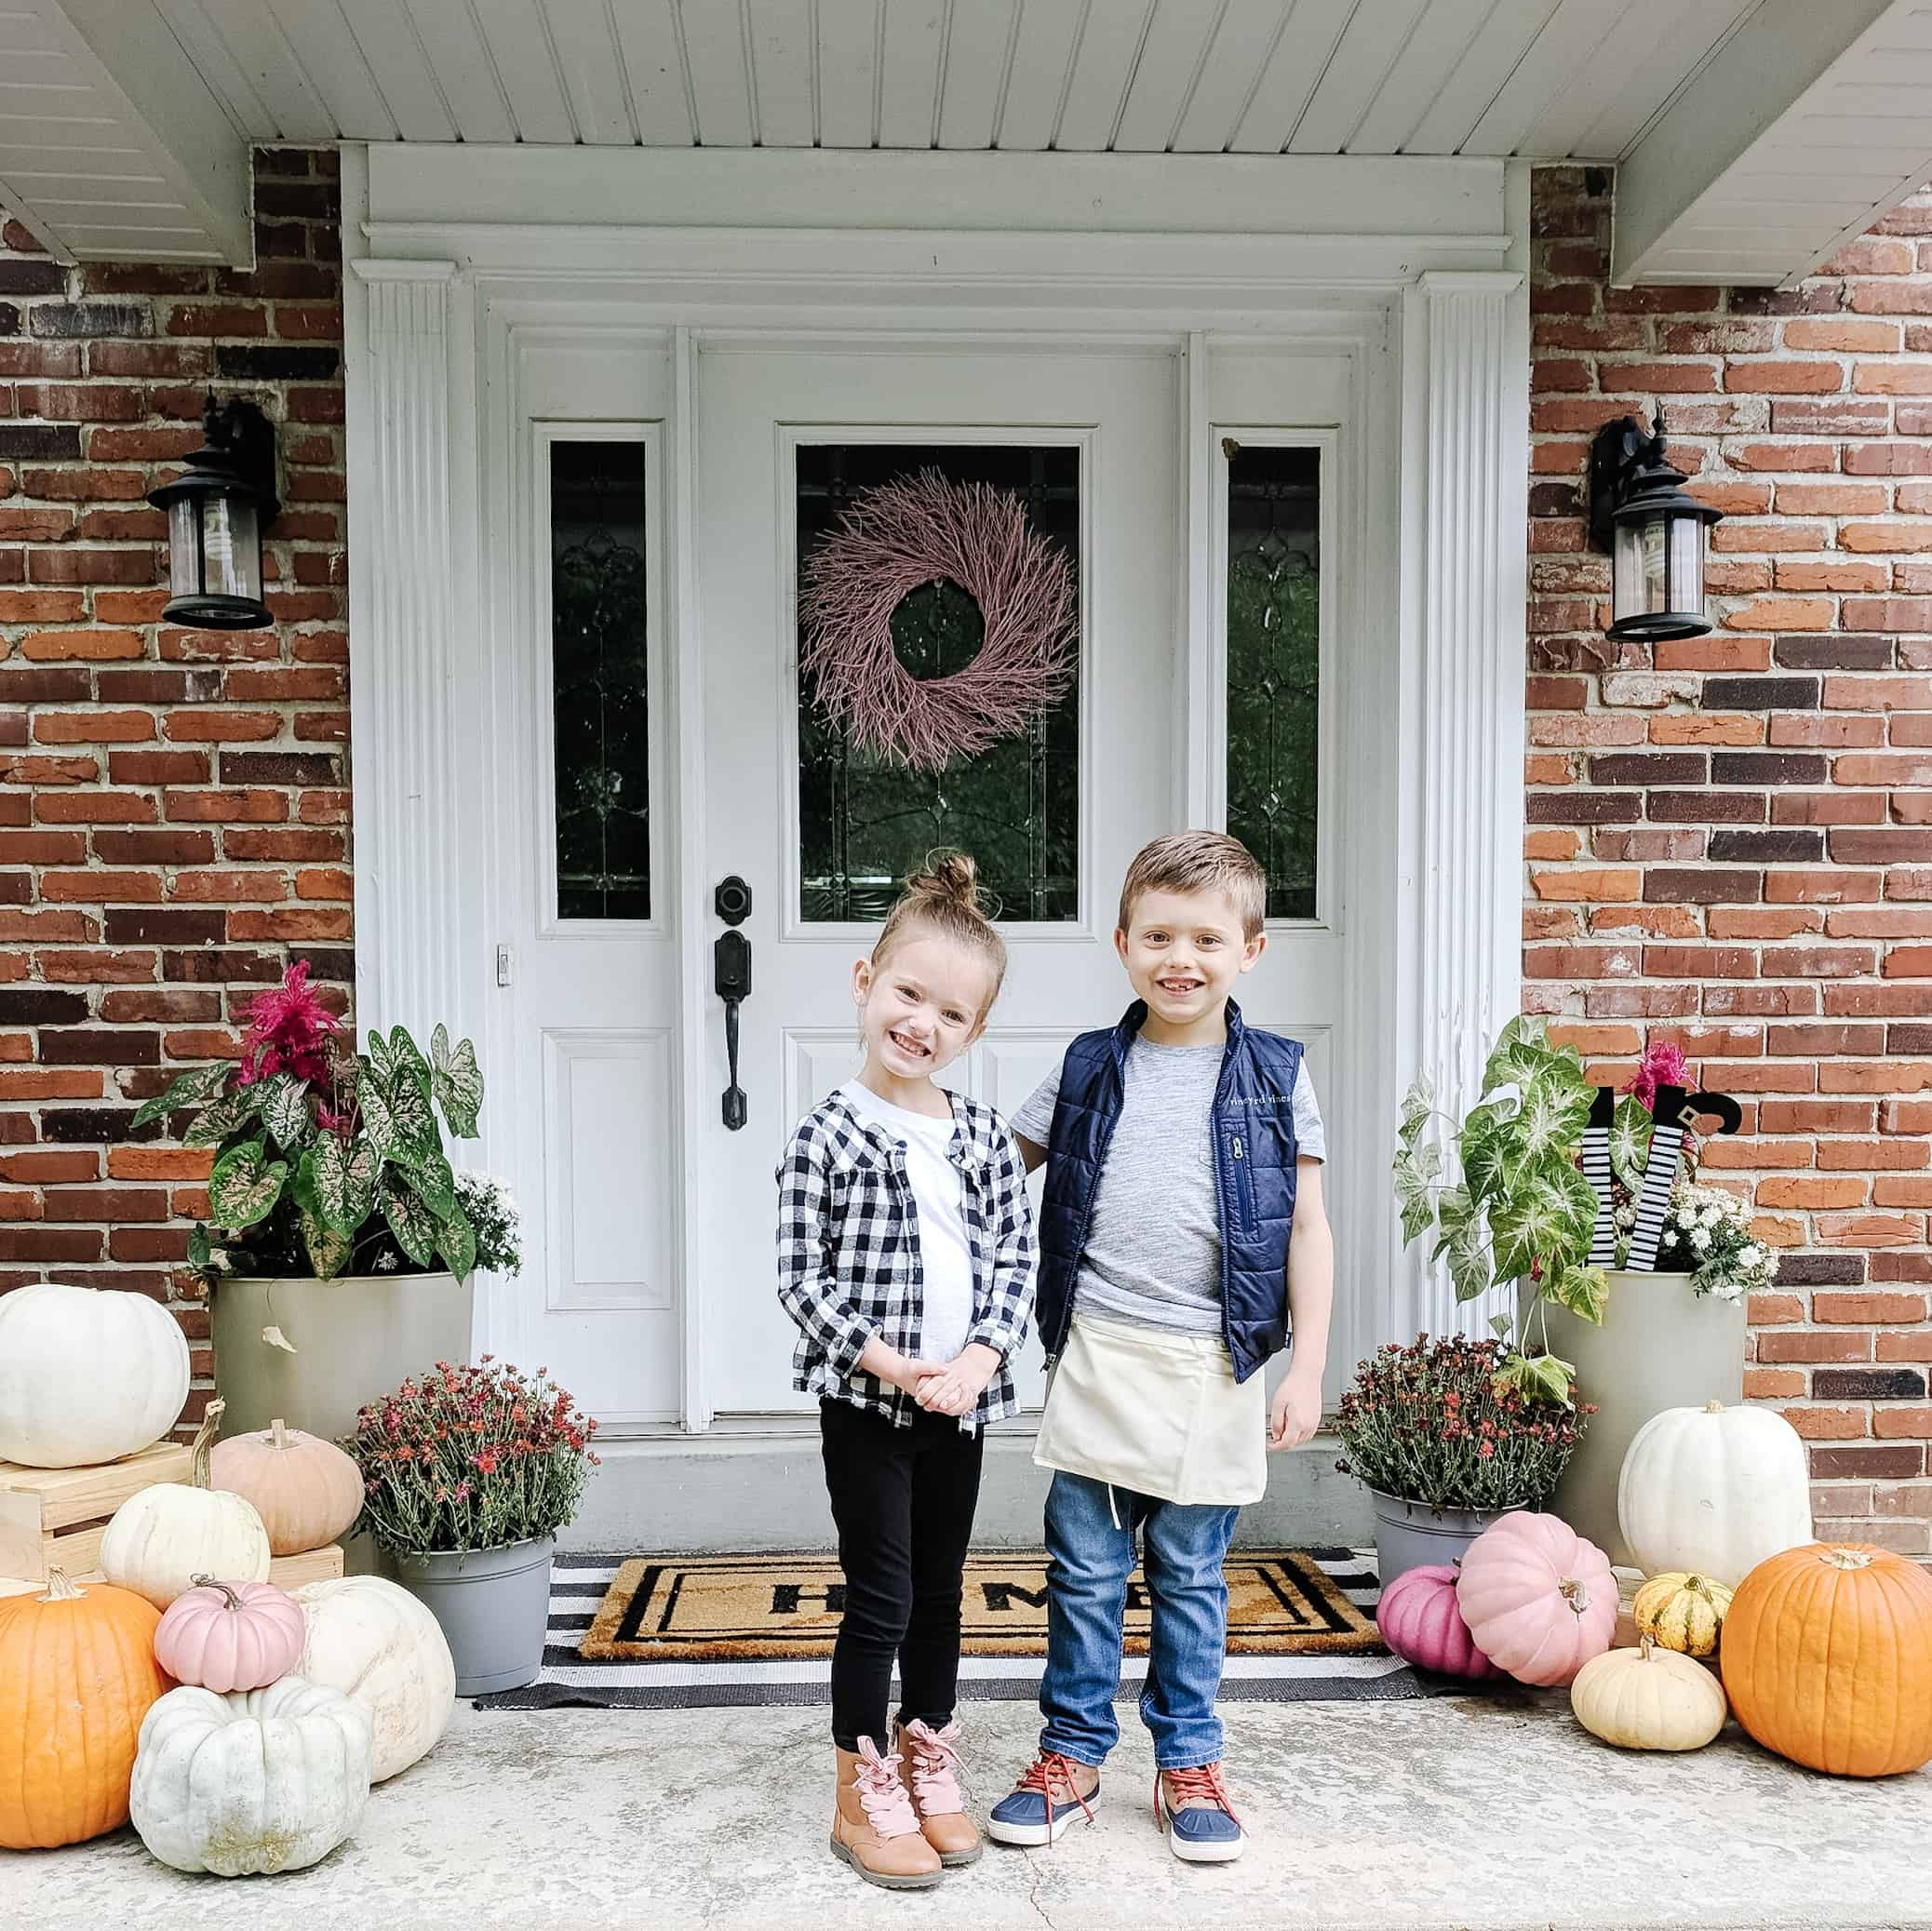 toddler chip and Joanna costume